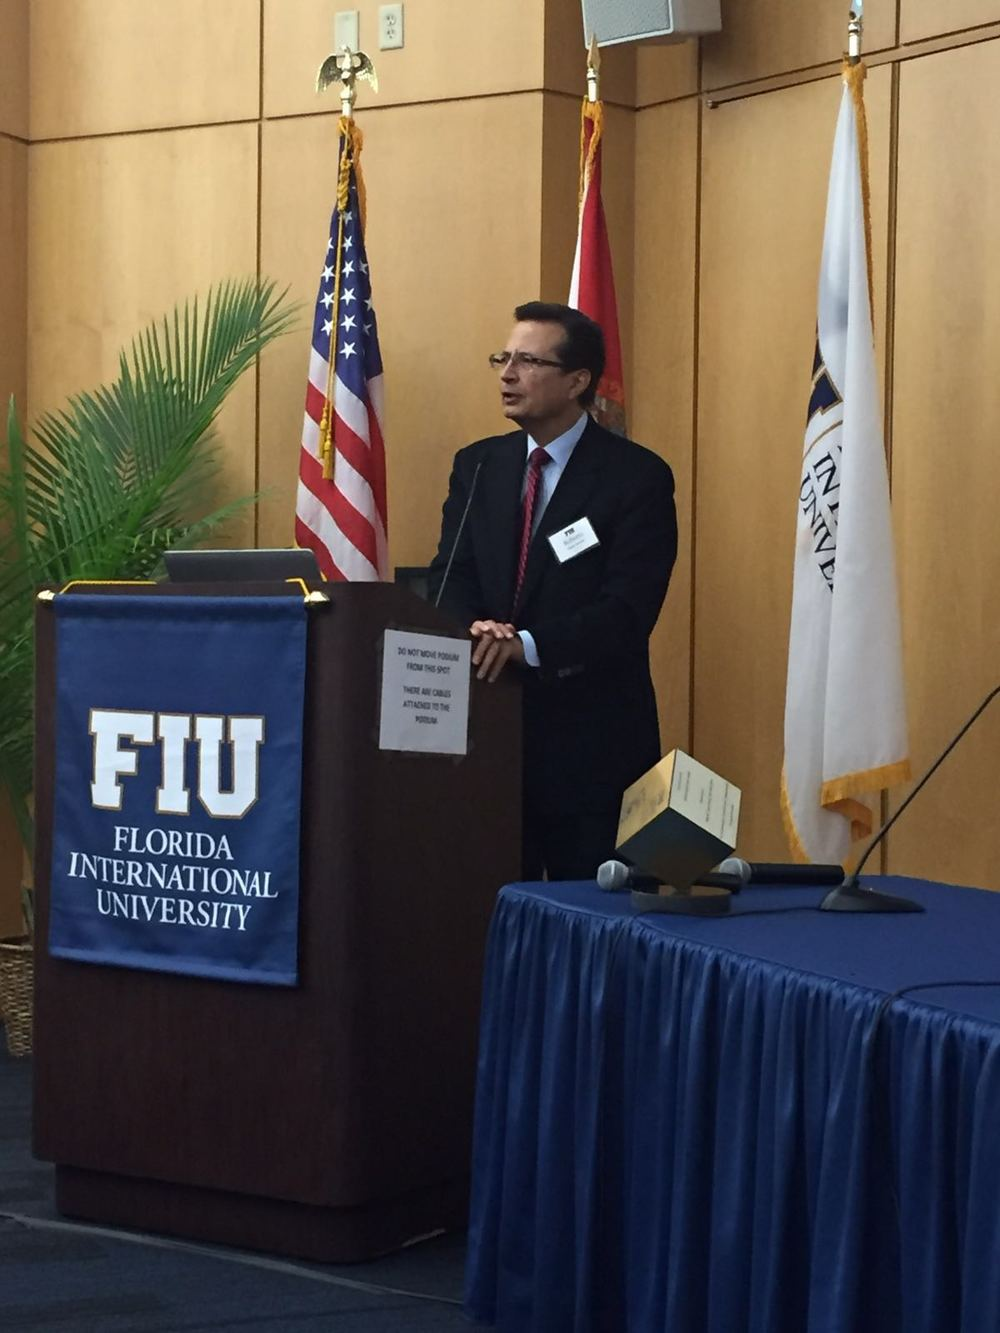 Florida International University. Dr. Tapia-Conyer